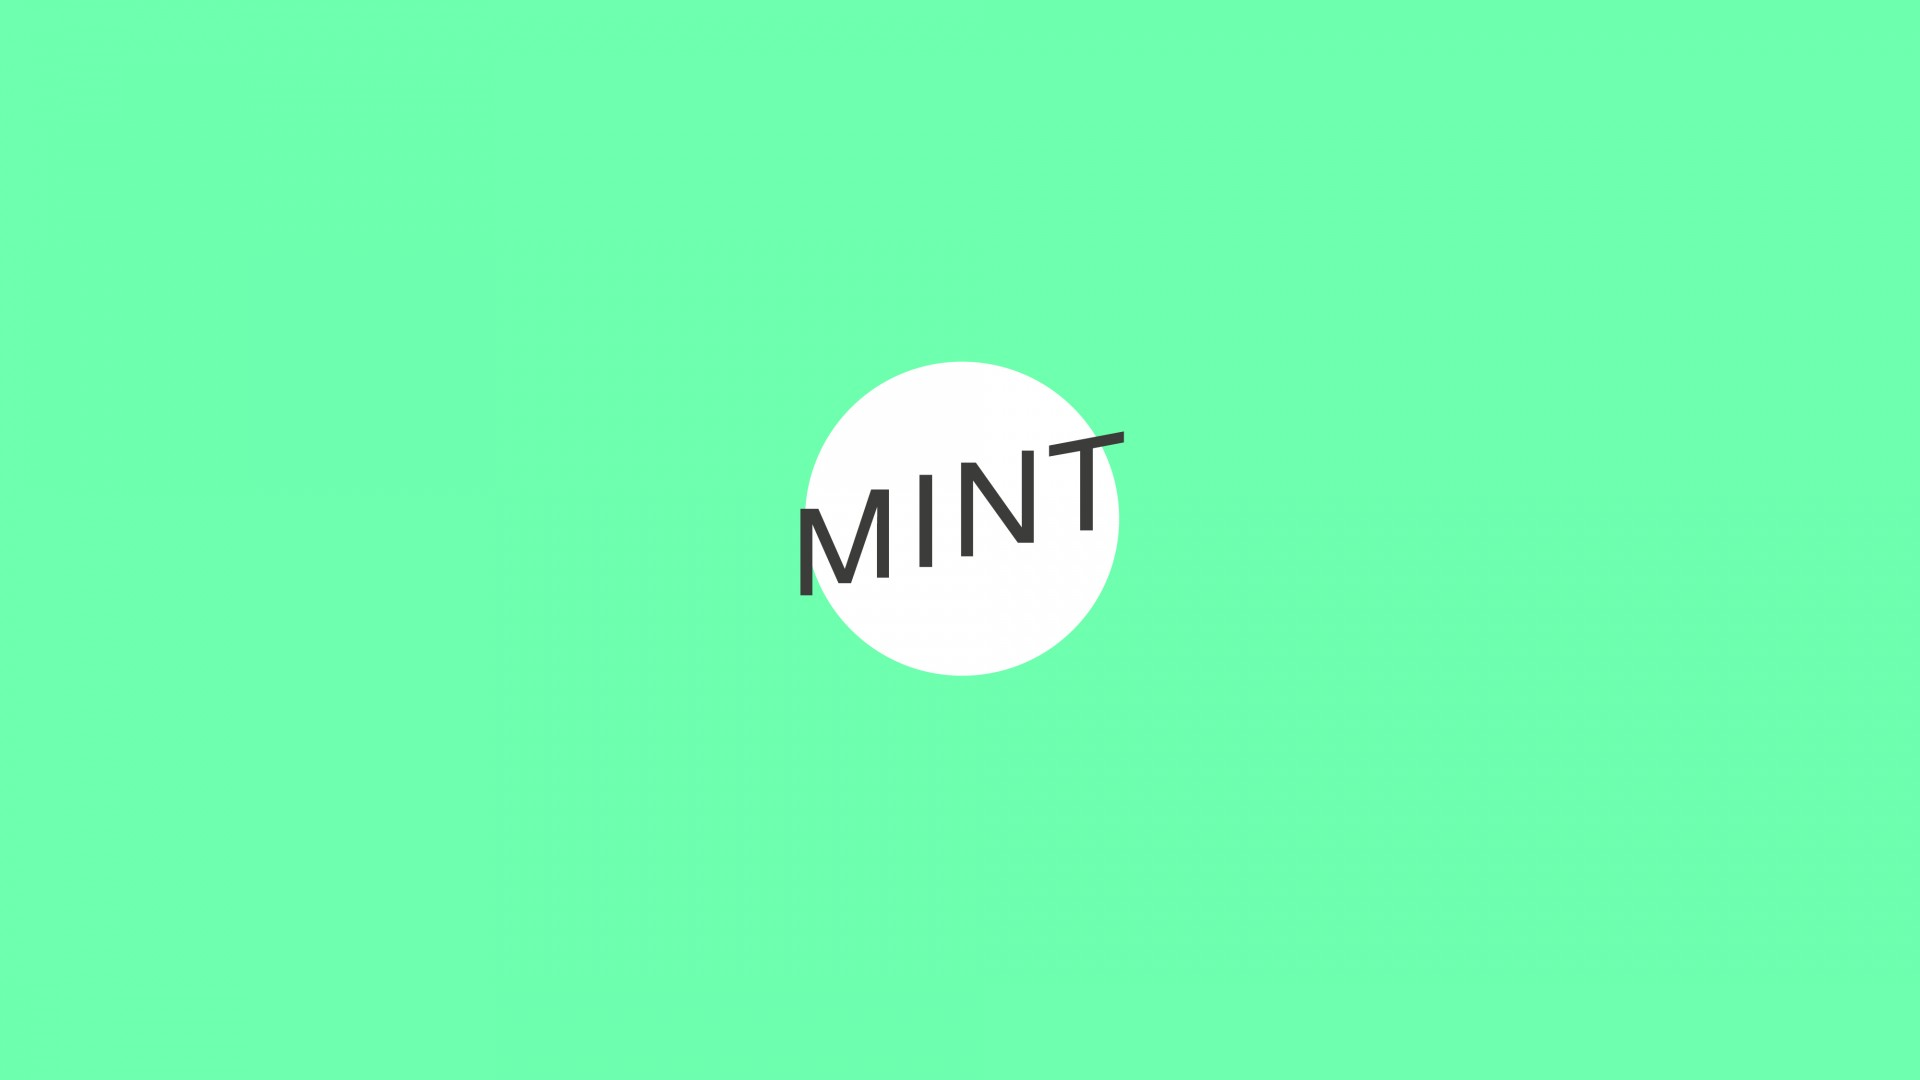 MINT_Casestudy_Website_2019_v1